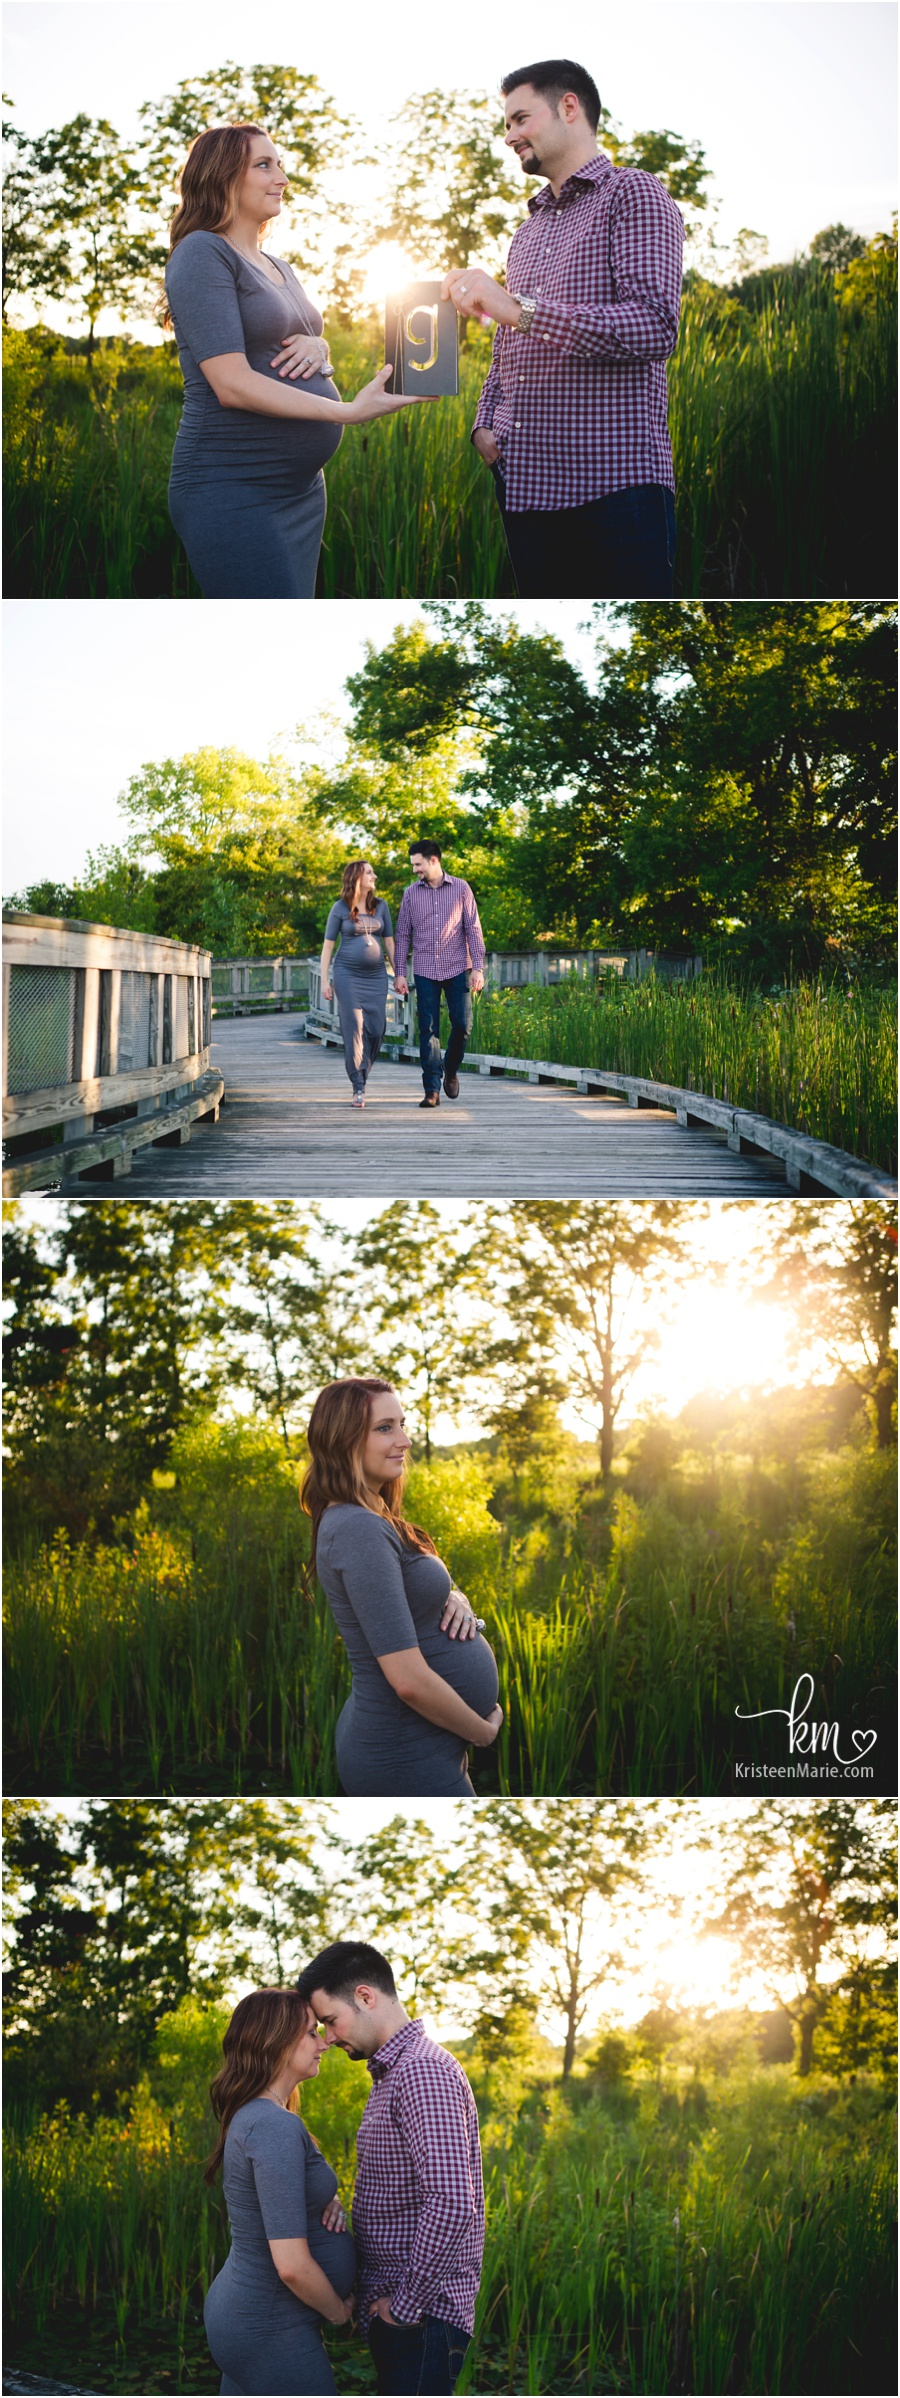 stunning sunset maternity images - KristeenMarie Photography